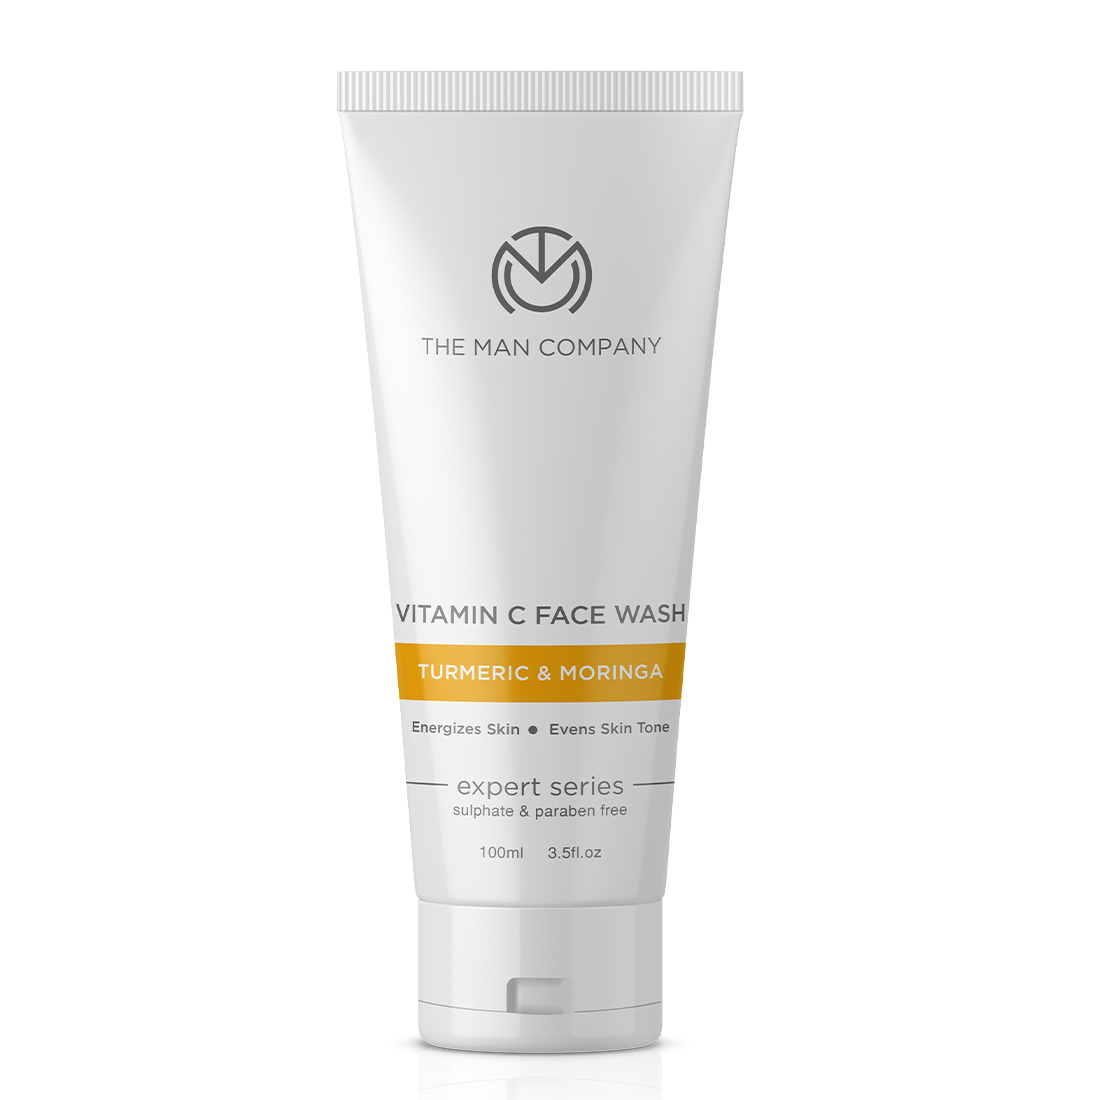 The Man Company | The Man Company Vitamin C for Turmeric and Moringa for Skin Brightening and Anti Ageing - No Paraben, Sulphate, Silicones, Color - 100ml Face Wash